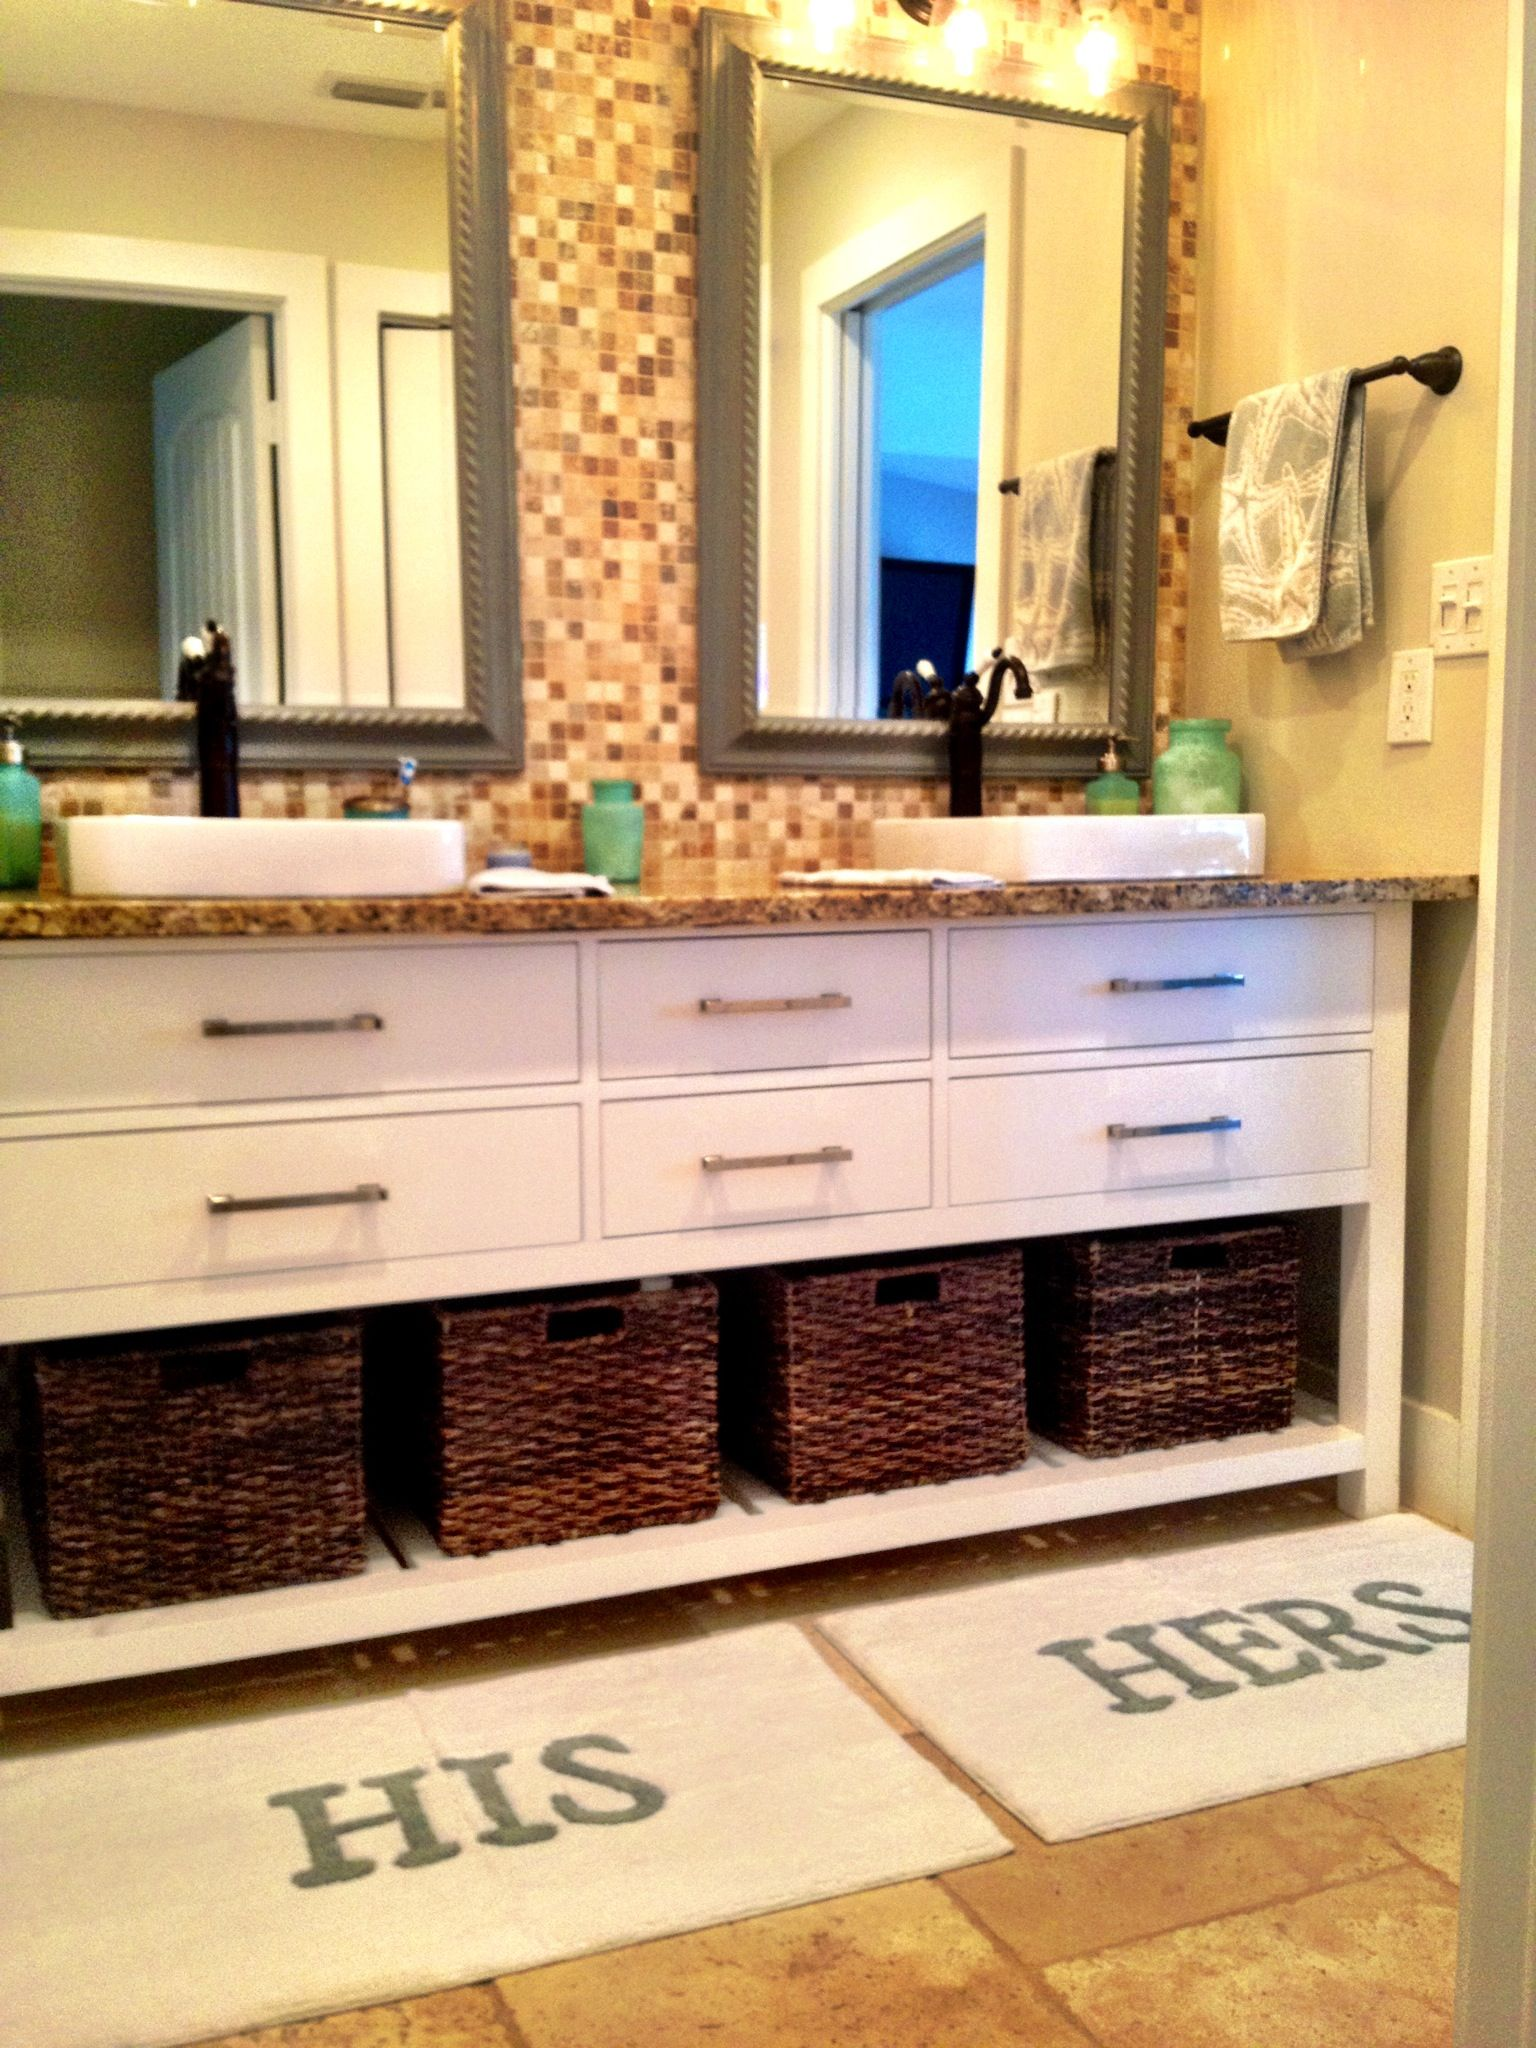 Master bedroom bathroom  Cute his her bathroom  Love the rugs and basket idea  Bathroom